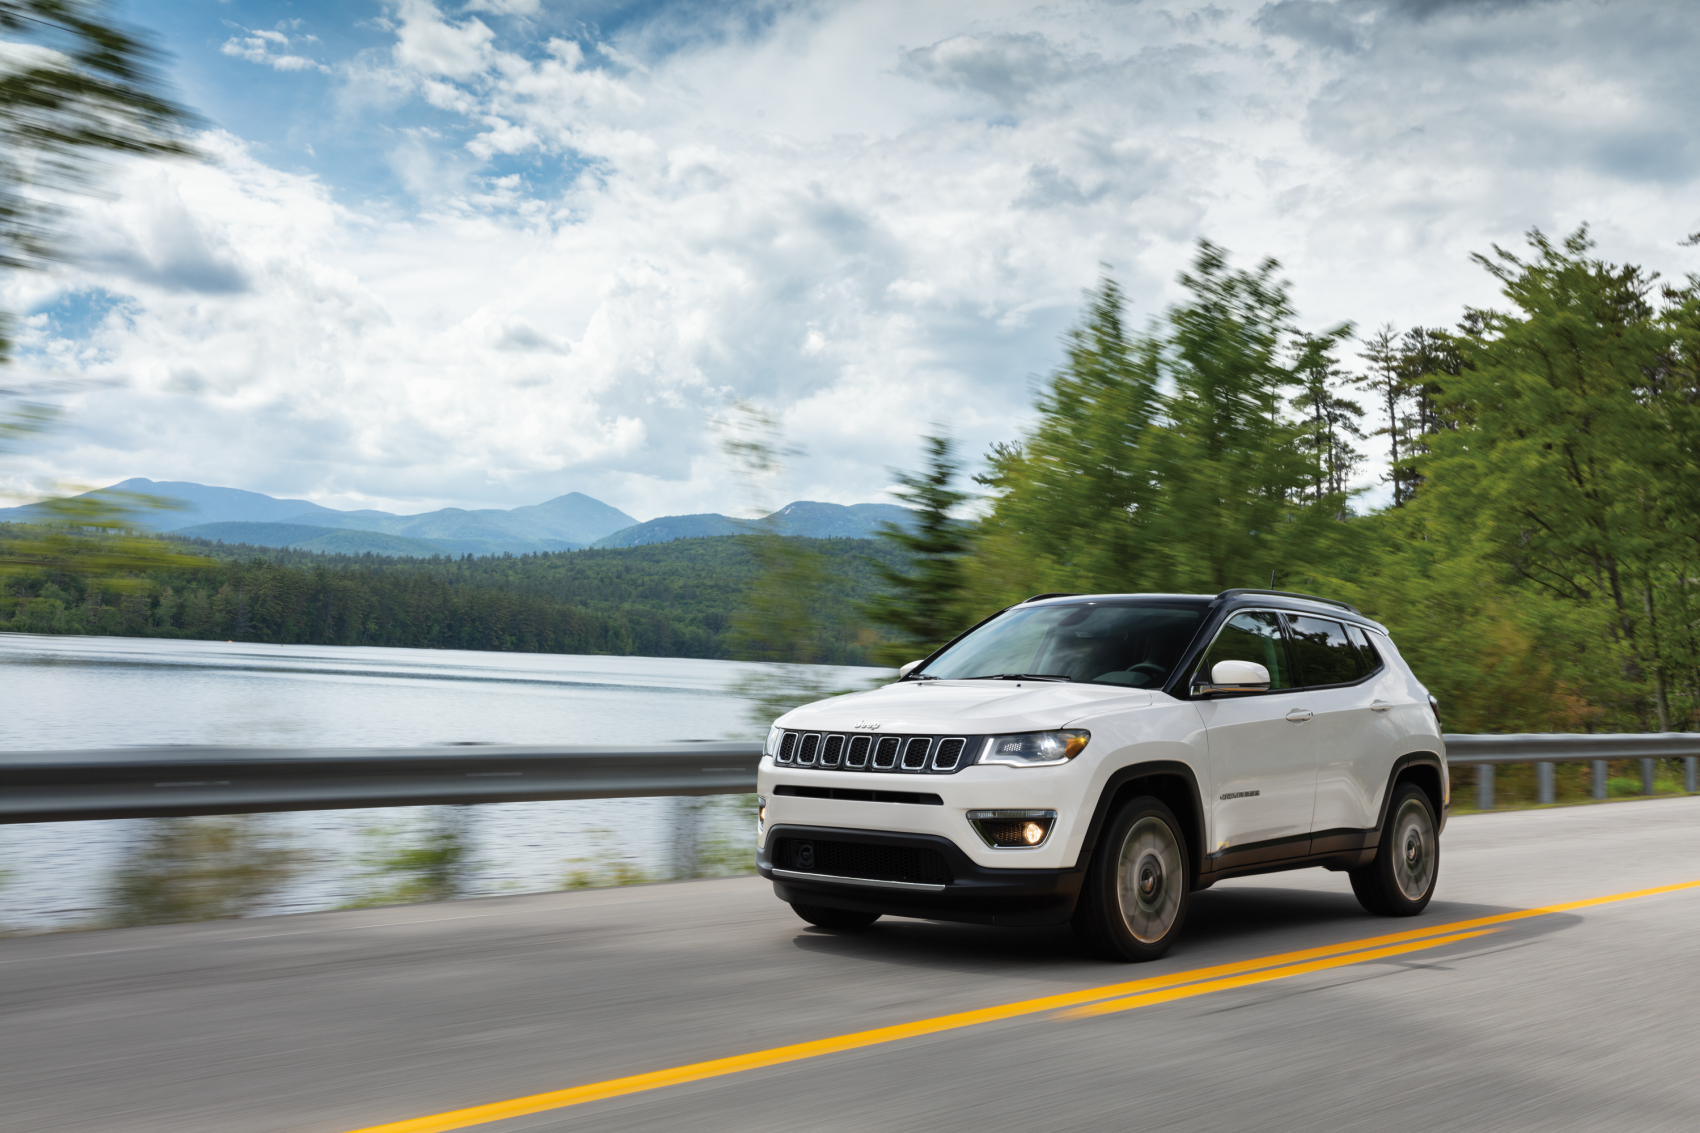 2021 Jeep Compass White Mountain Road